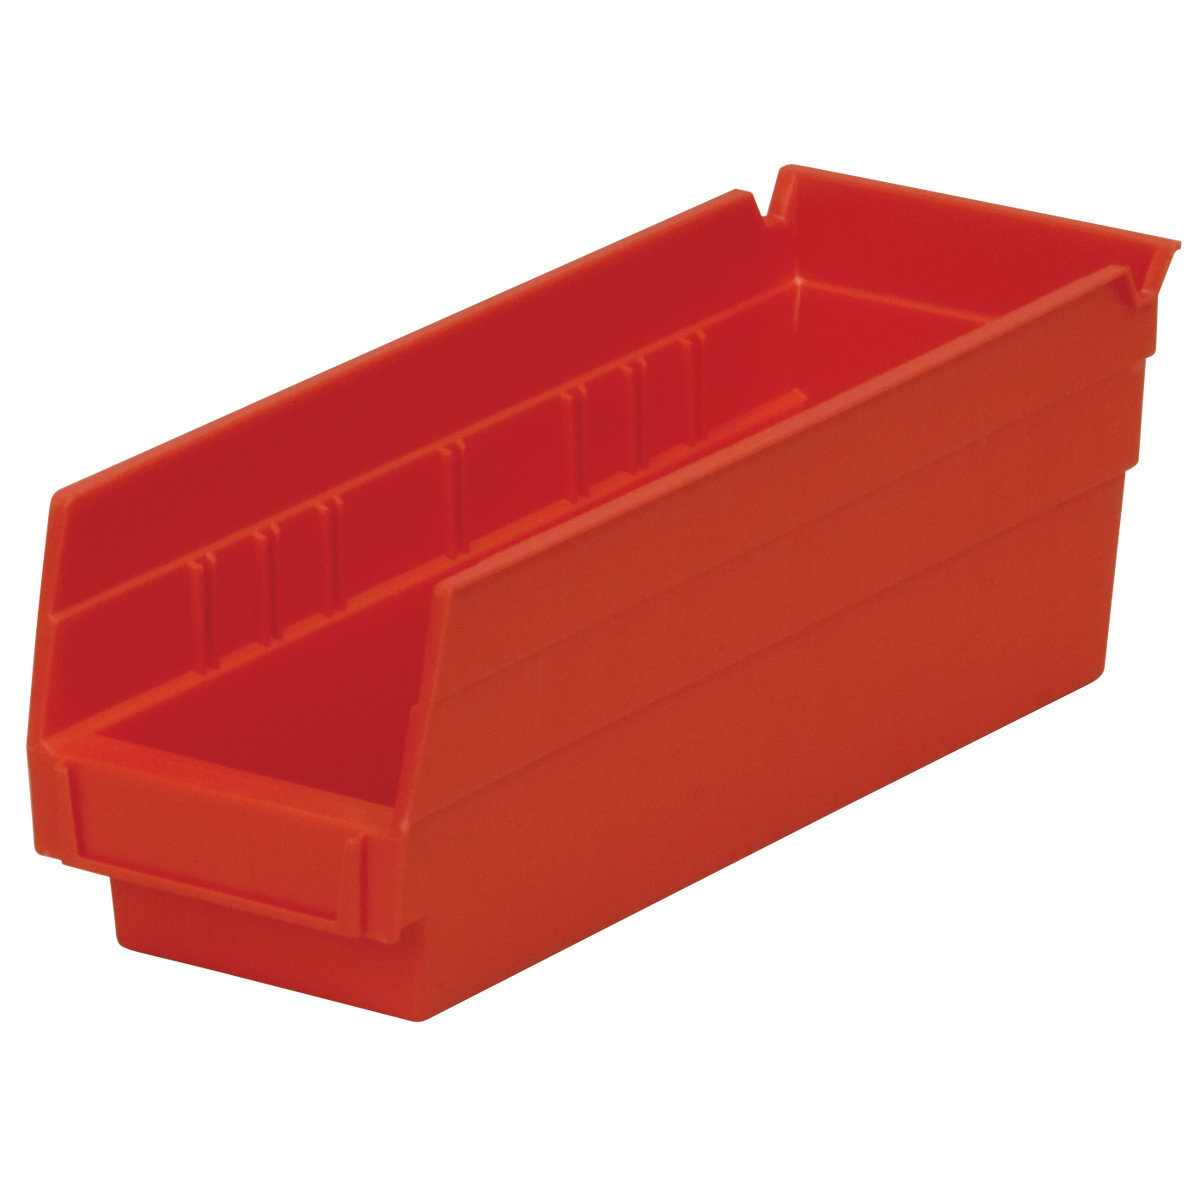 Shelf Bin 11-5/8 x 4-1/8 x 4, Red (30120RED).  This item sold in carton quantities of 24.